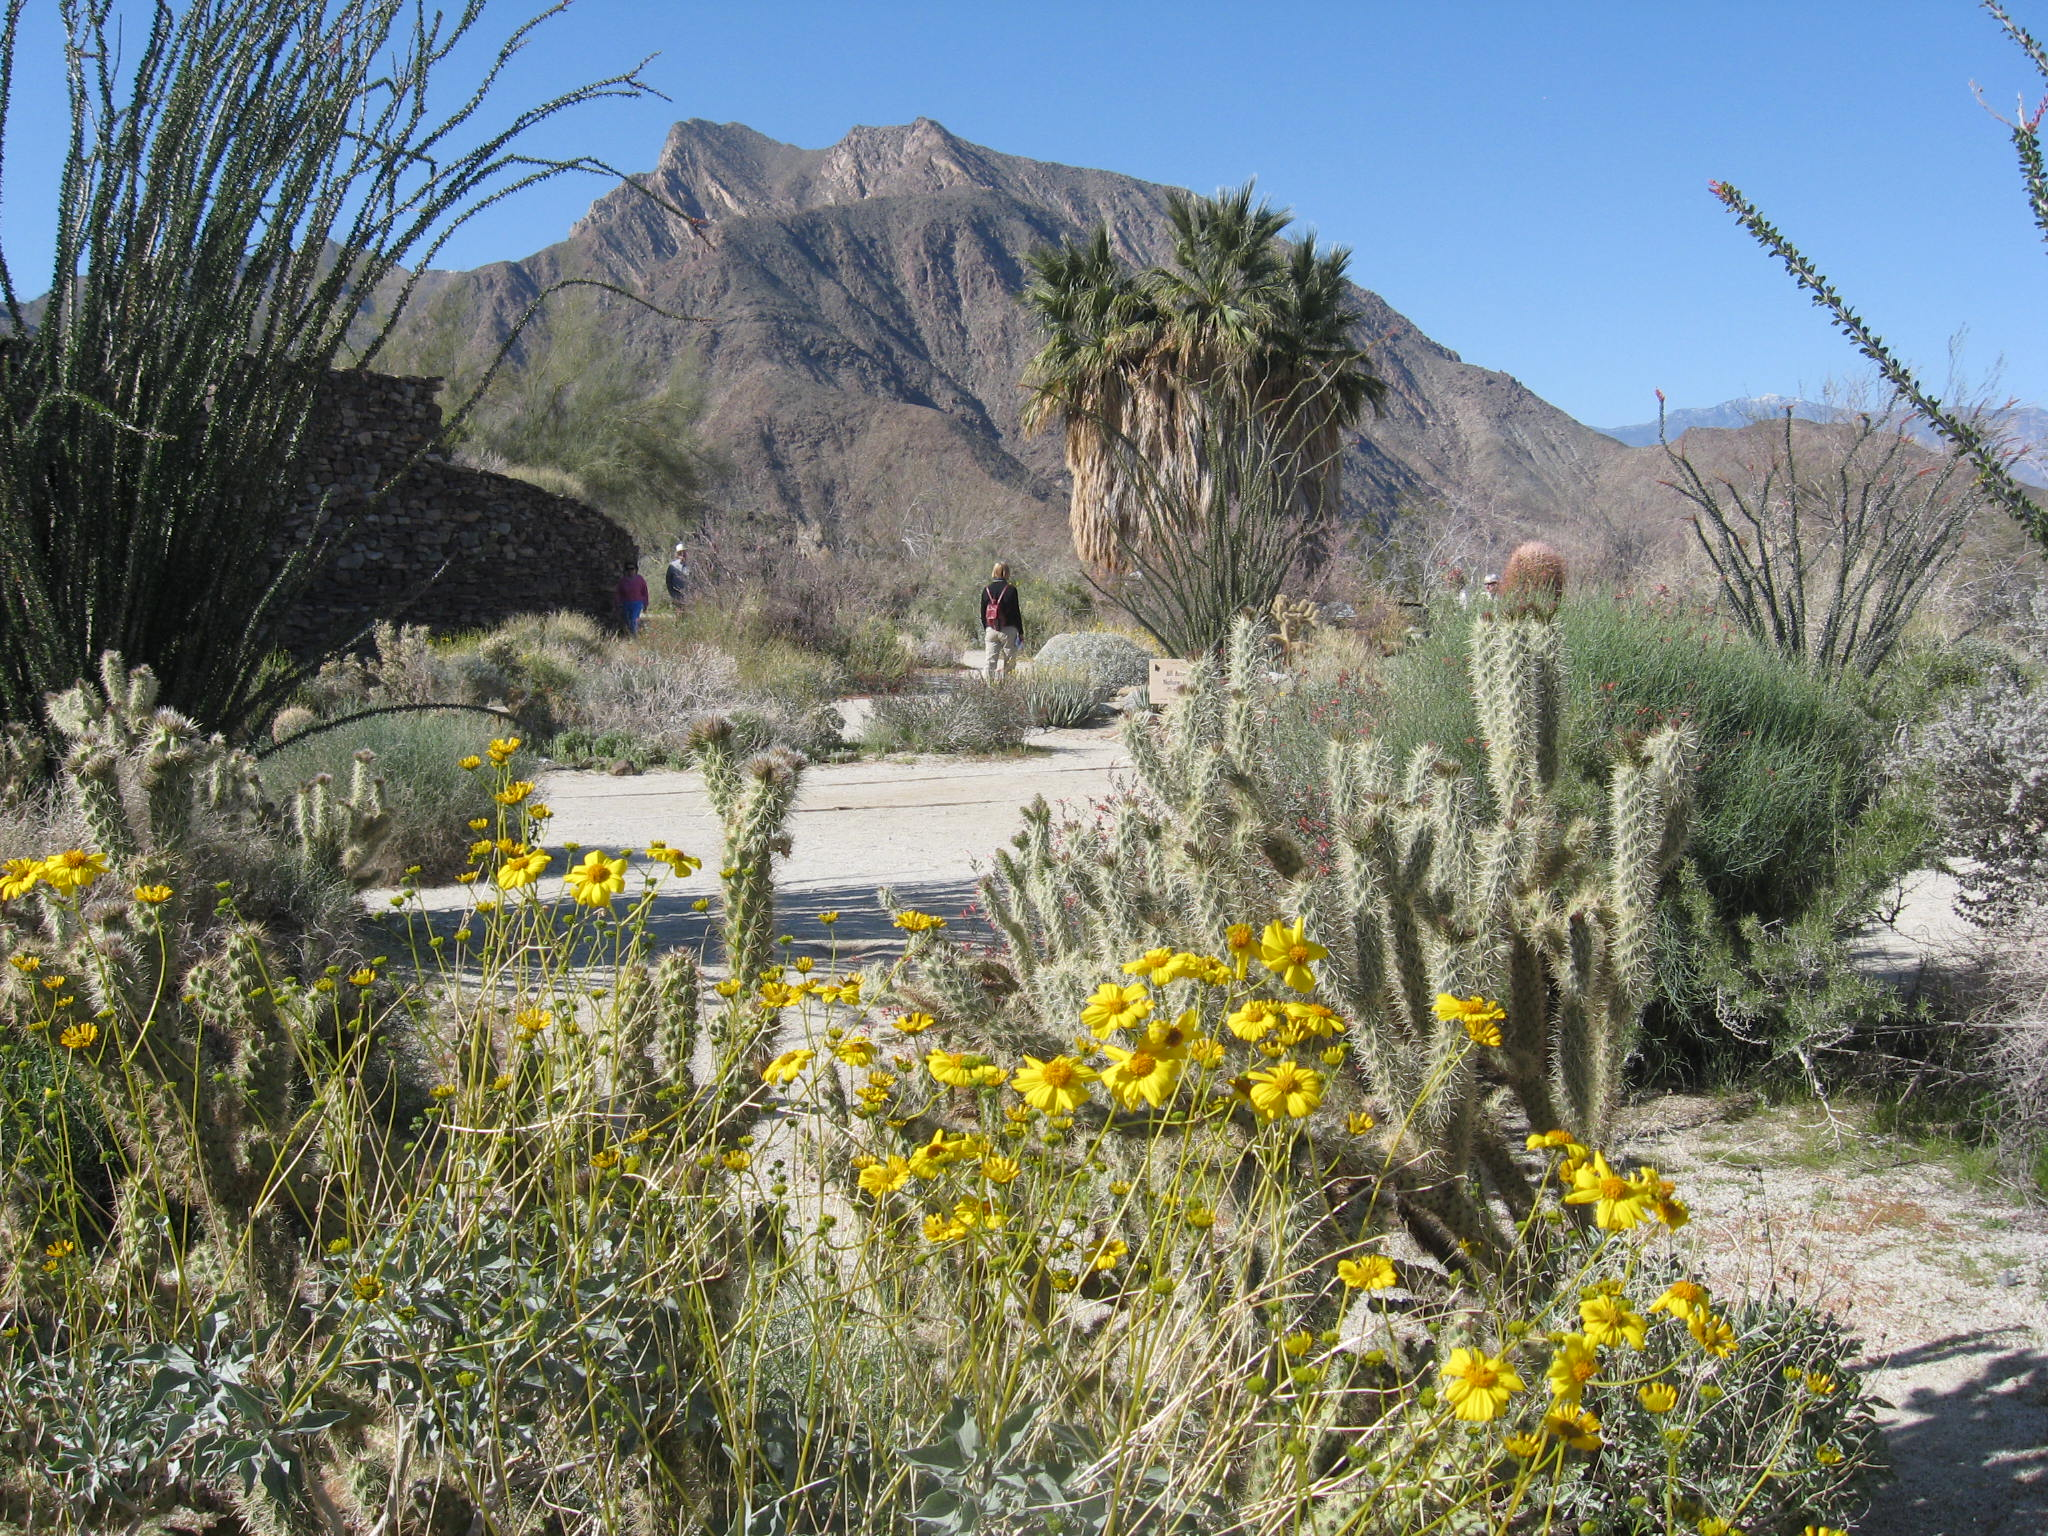 Borrego Springs celebrates cooler weather with Borrego Days Desert Festival Oct. 21 to Oct. 23. Courtesy photos